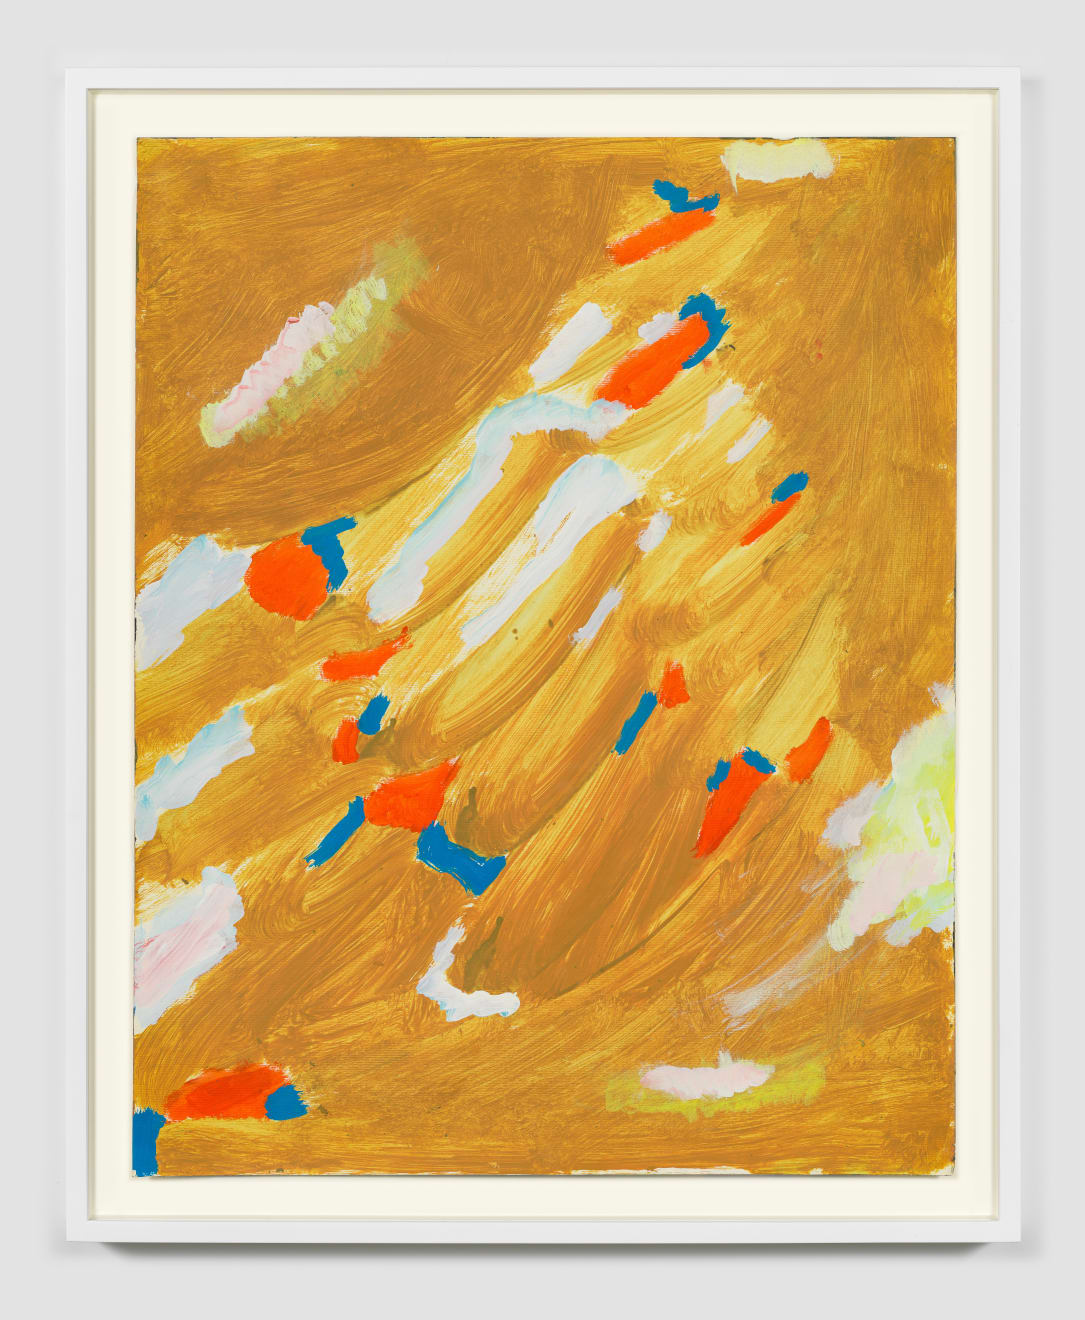 Betty Parsons Untitled, c.1976 Acrylic on paper 24h x 19w x 1.50d in (60.96h x 48.26w x 3.81d cm)